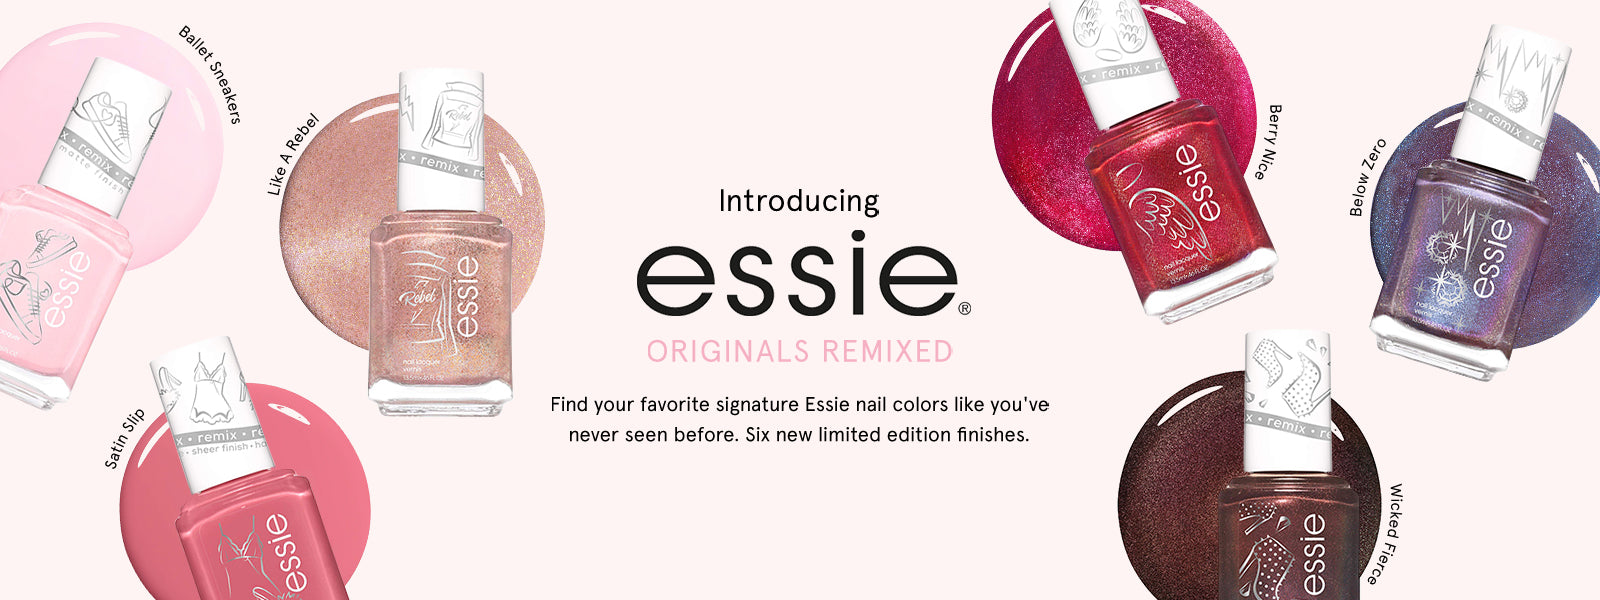 Essie Originals Remixed